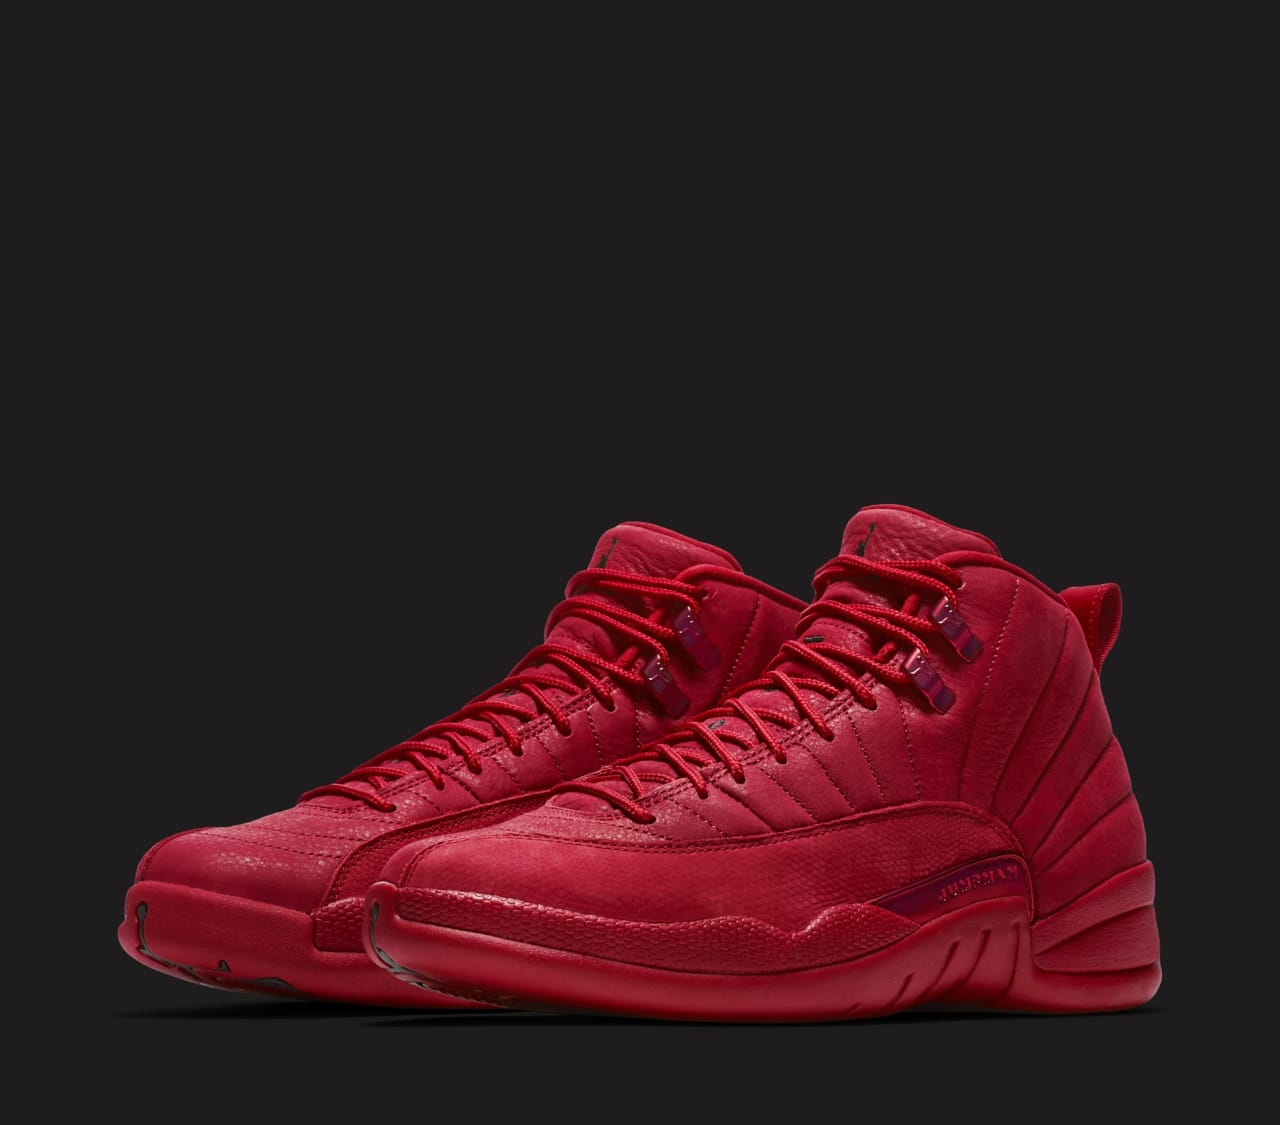 36969eba31a Air Jordan 12 Gym Red/Gym Red-Black 130690-601 University Blue ...